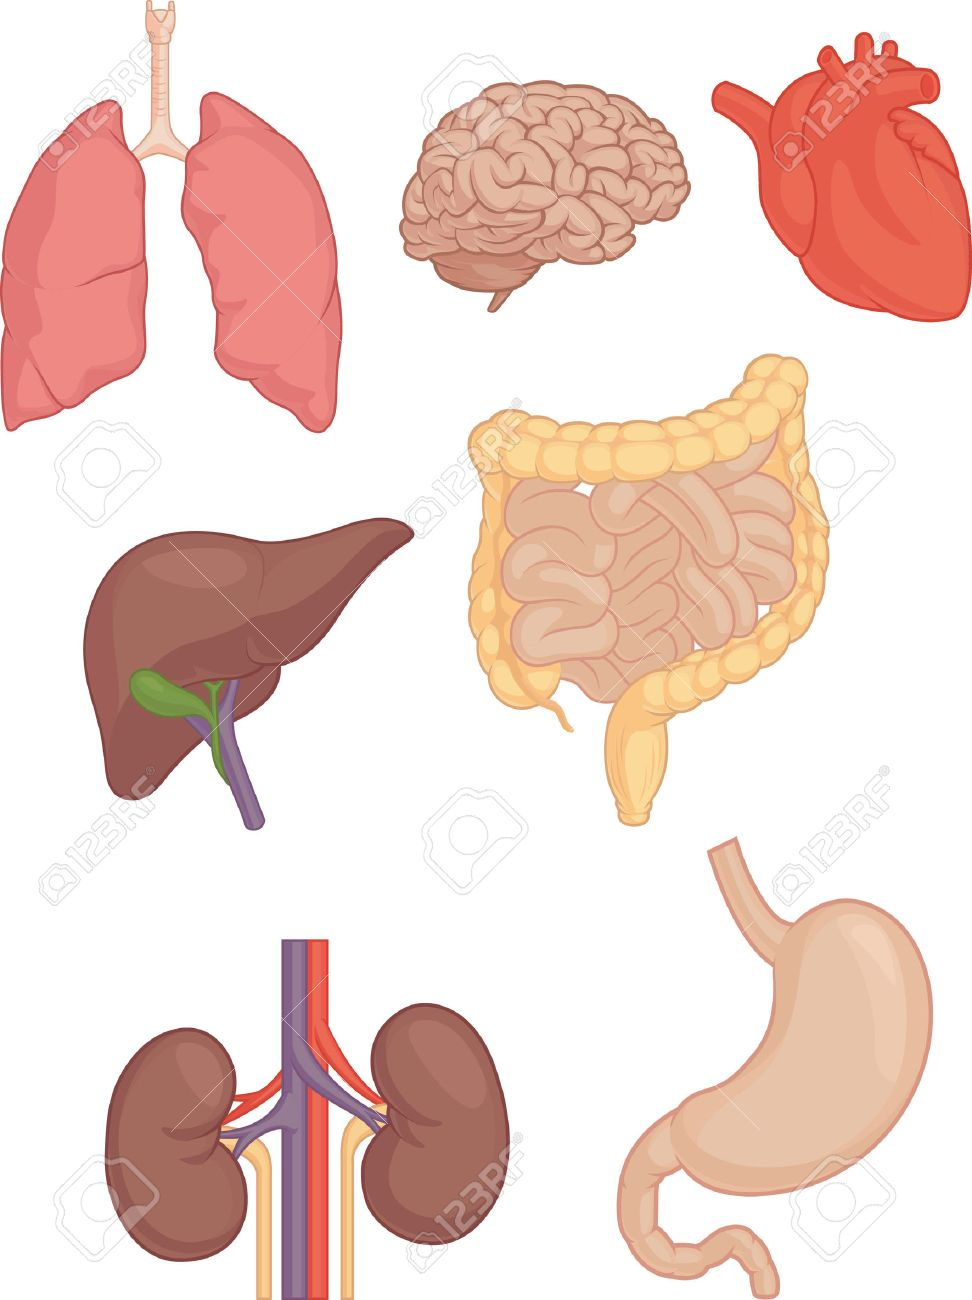 Human Body Parts - Brain, Lung, Heart, Liver, Intestines Royalty ...